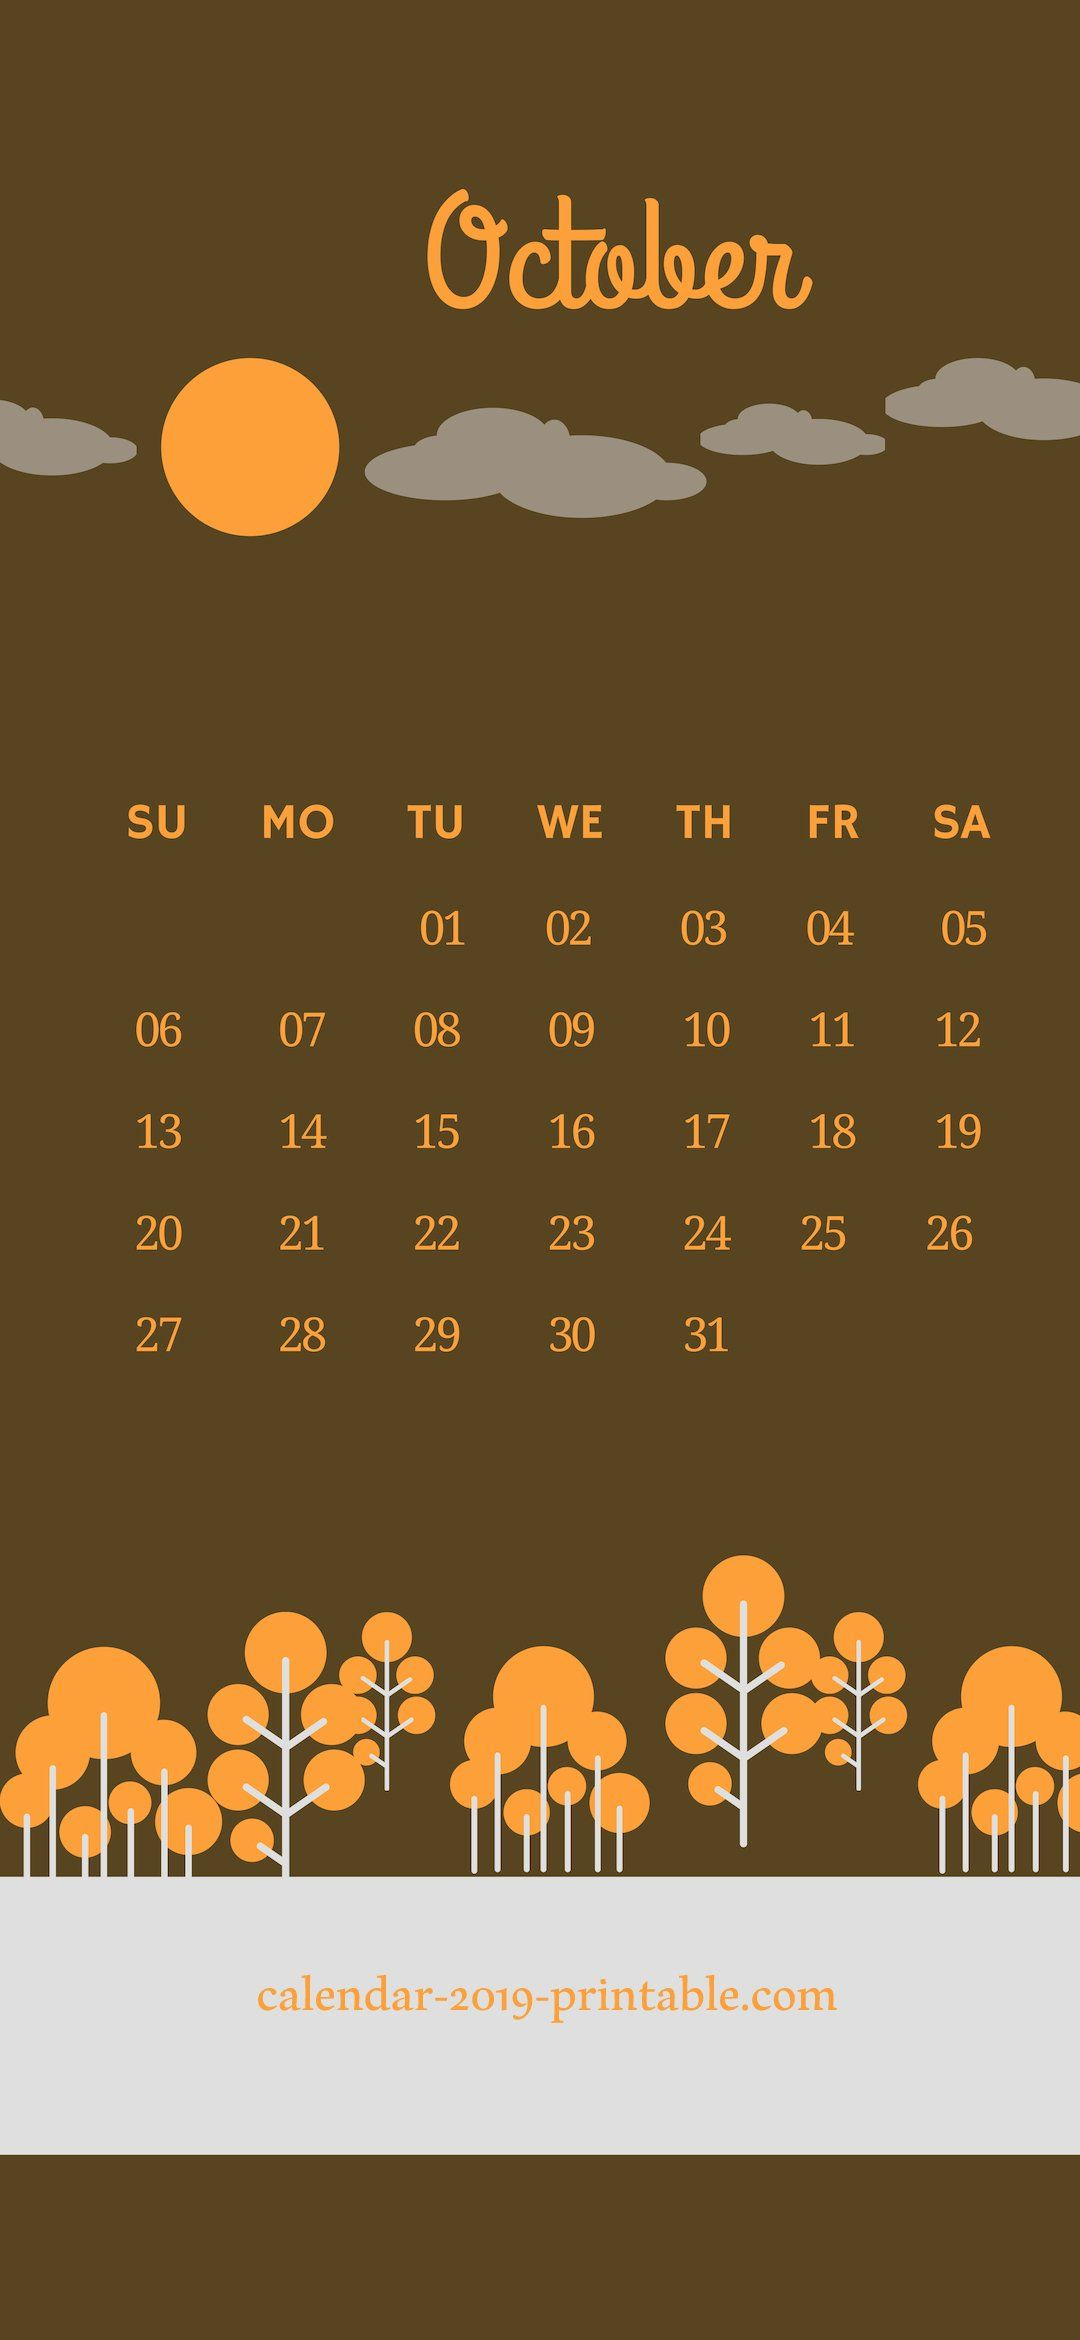 October 2019 Iphone Calendar Wallpaper Calendar Wallpaper